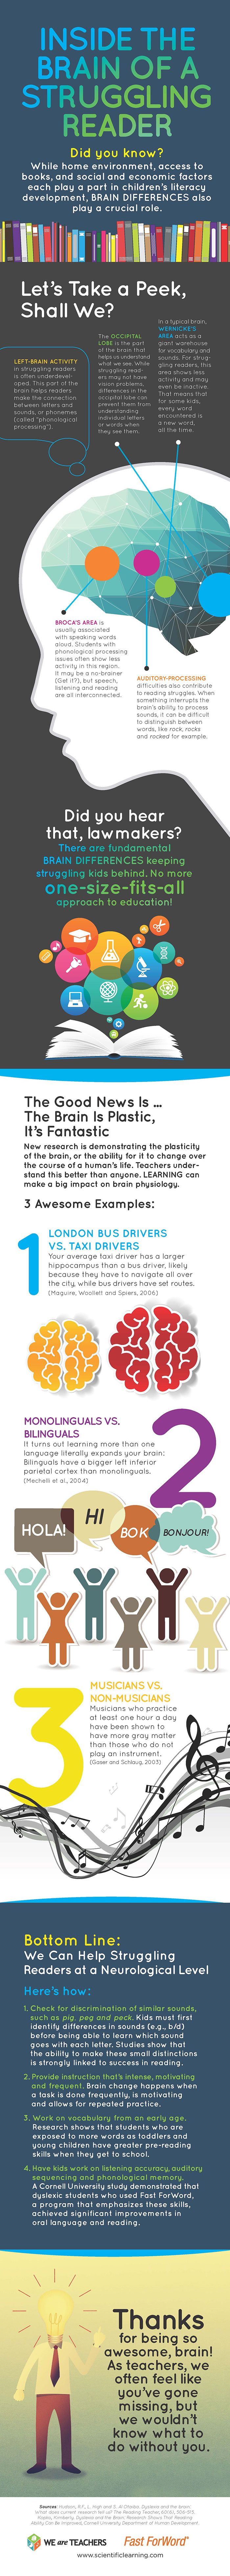 Inside the brain of a reader #infographic